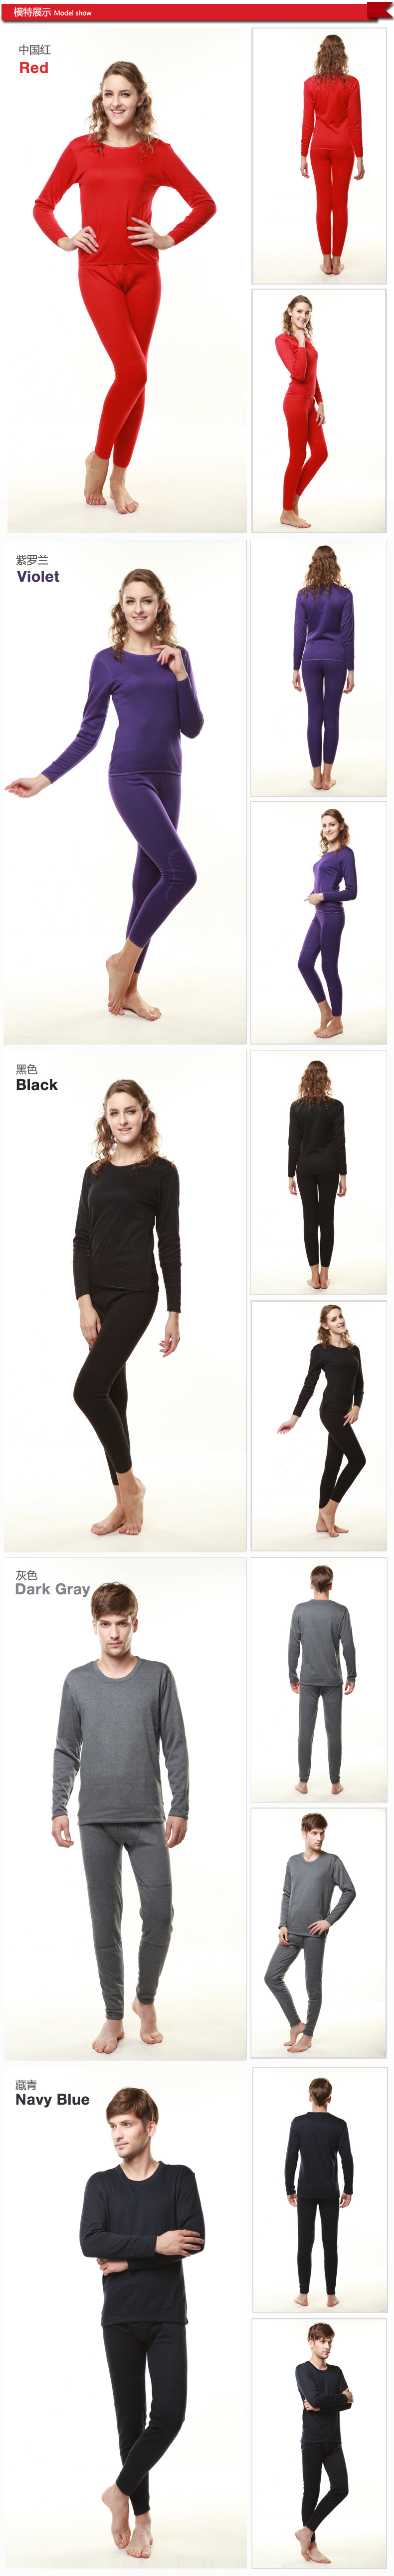 Extra-Warm-Cotton-Base-Layer-LongJohn-07